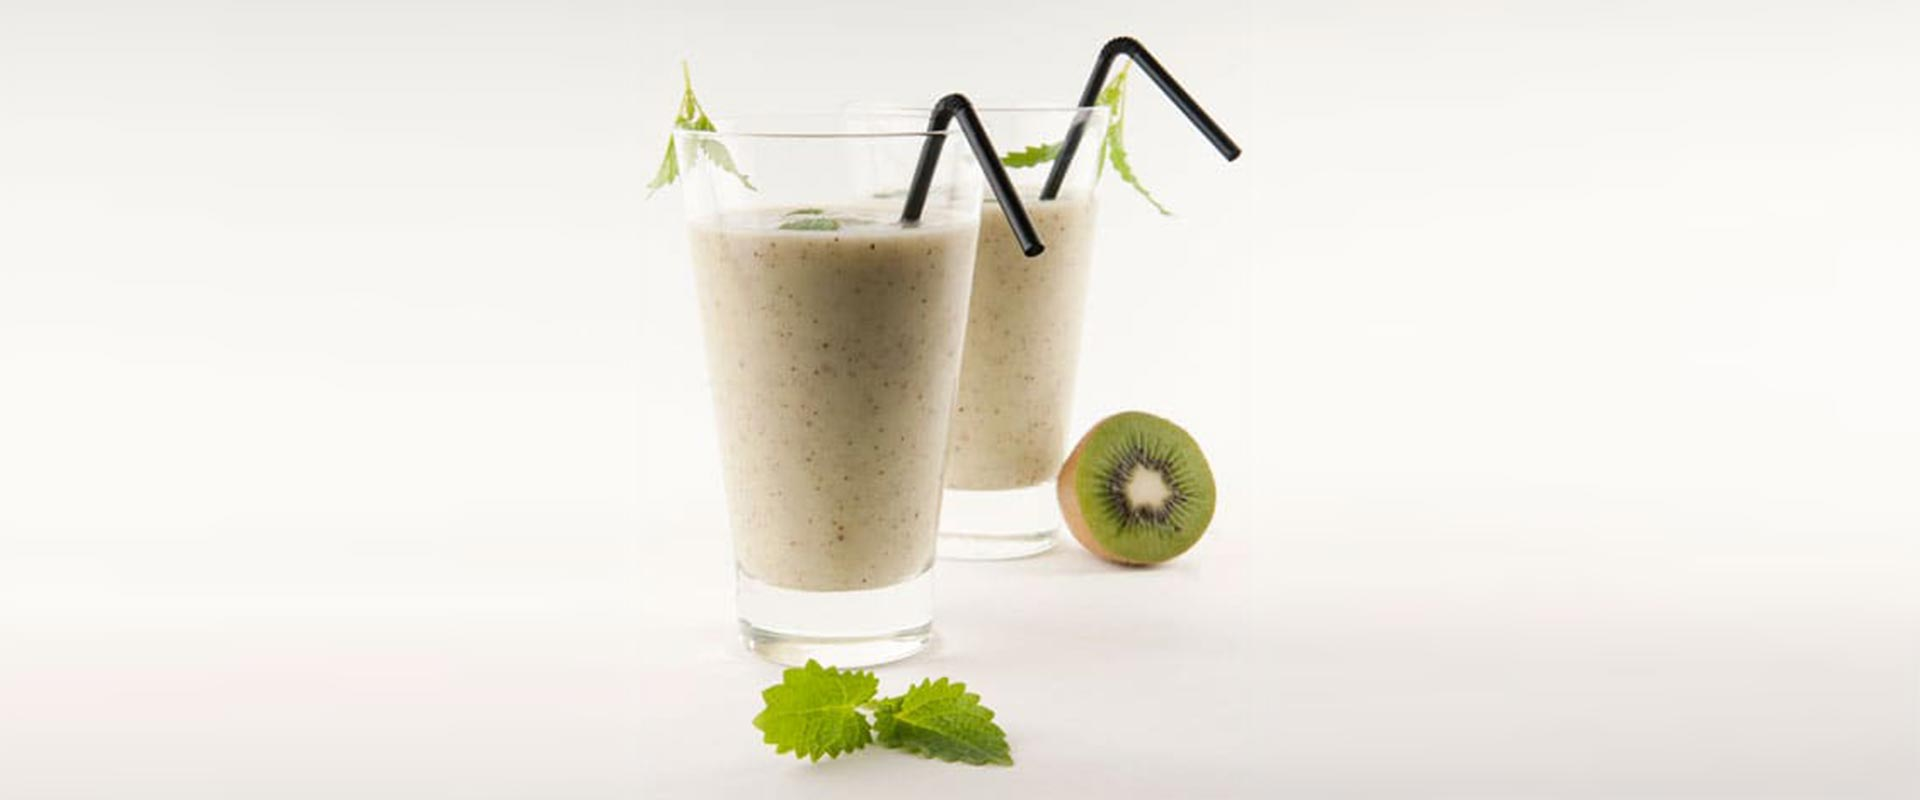 recipe1_Frisse-smoothIe-met-Zespri-green-kiwi-en-appel-thumbnail